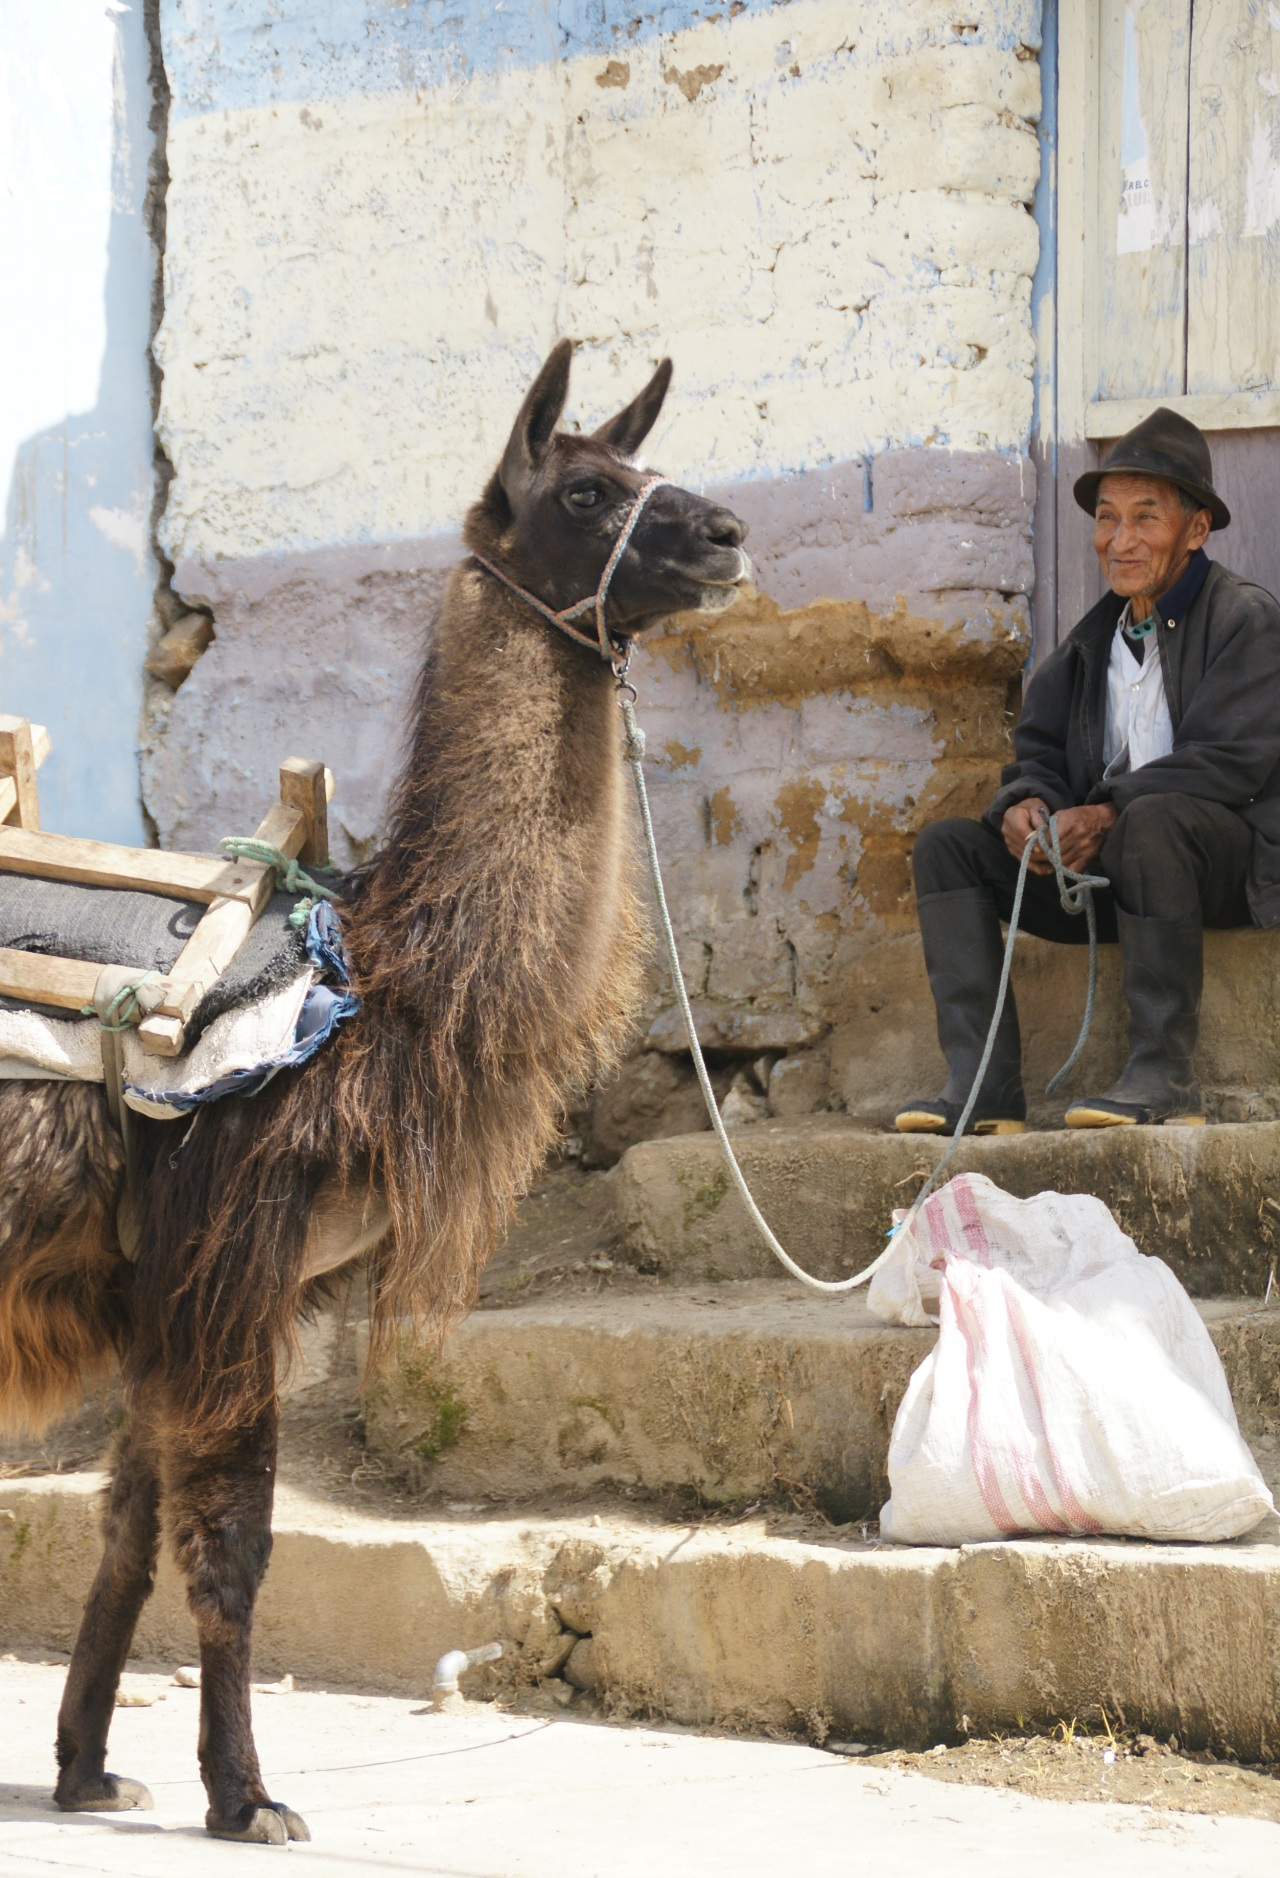 The Old Man Smiles. It's just him and his Llama doing the work today.